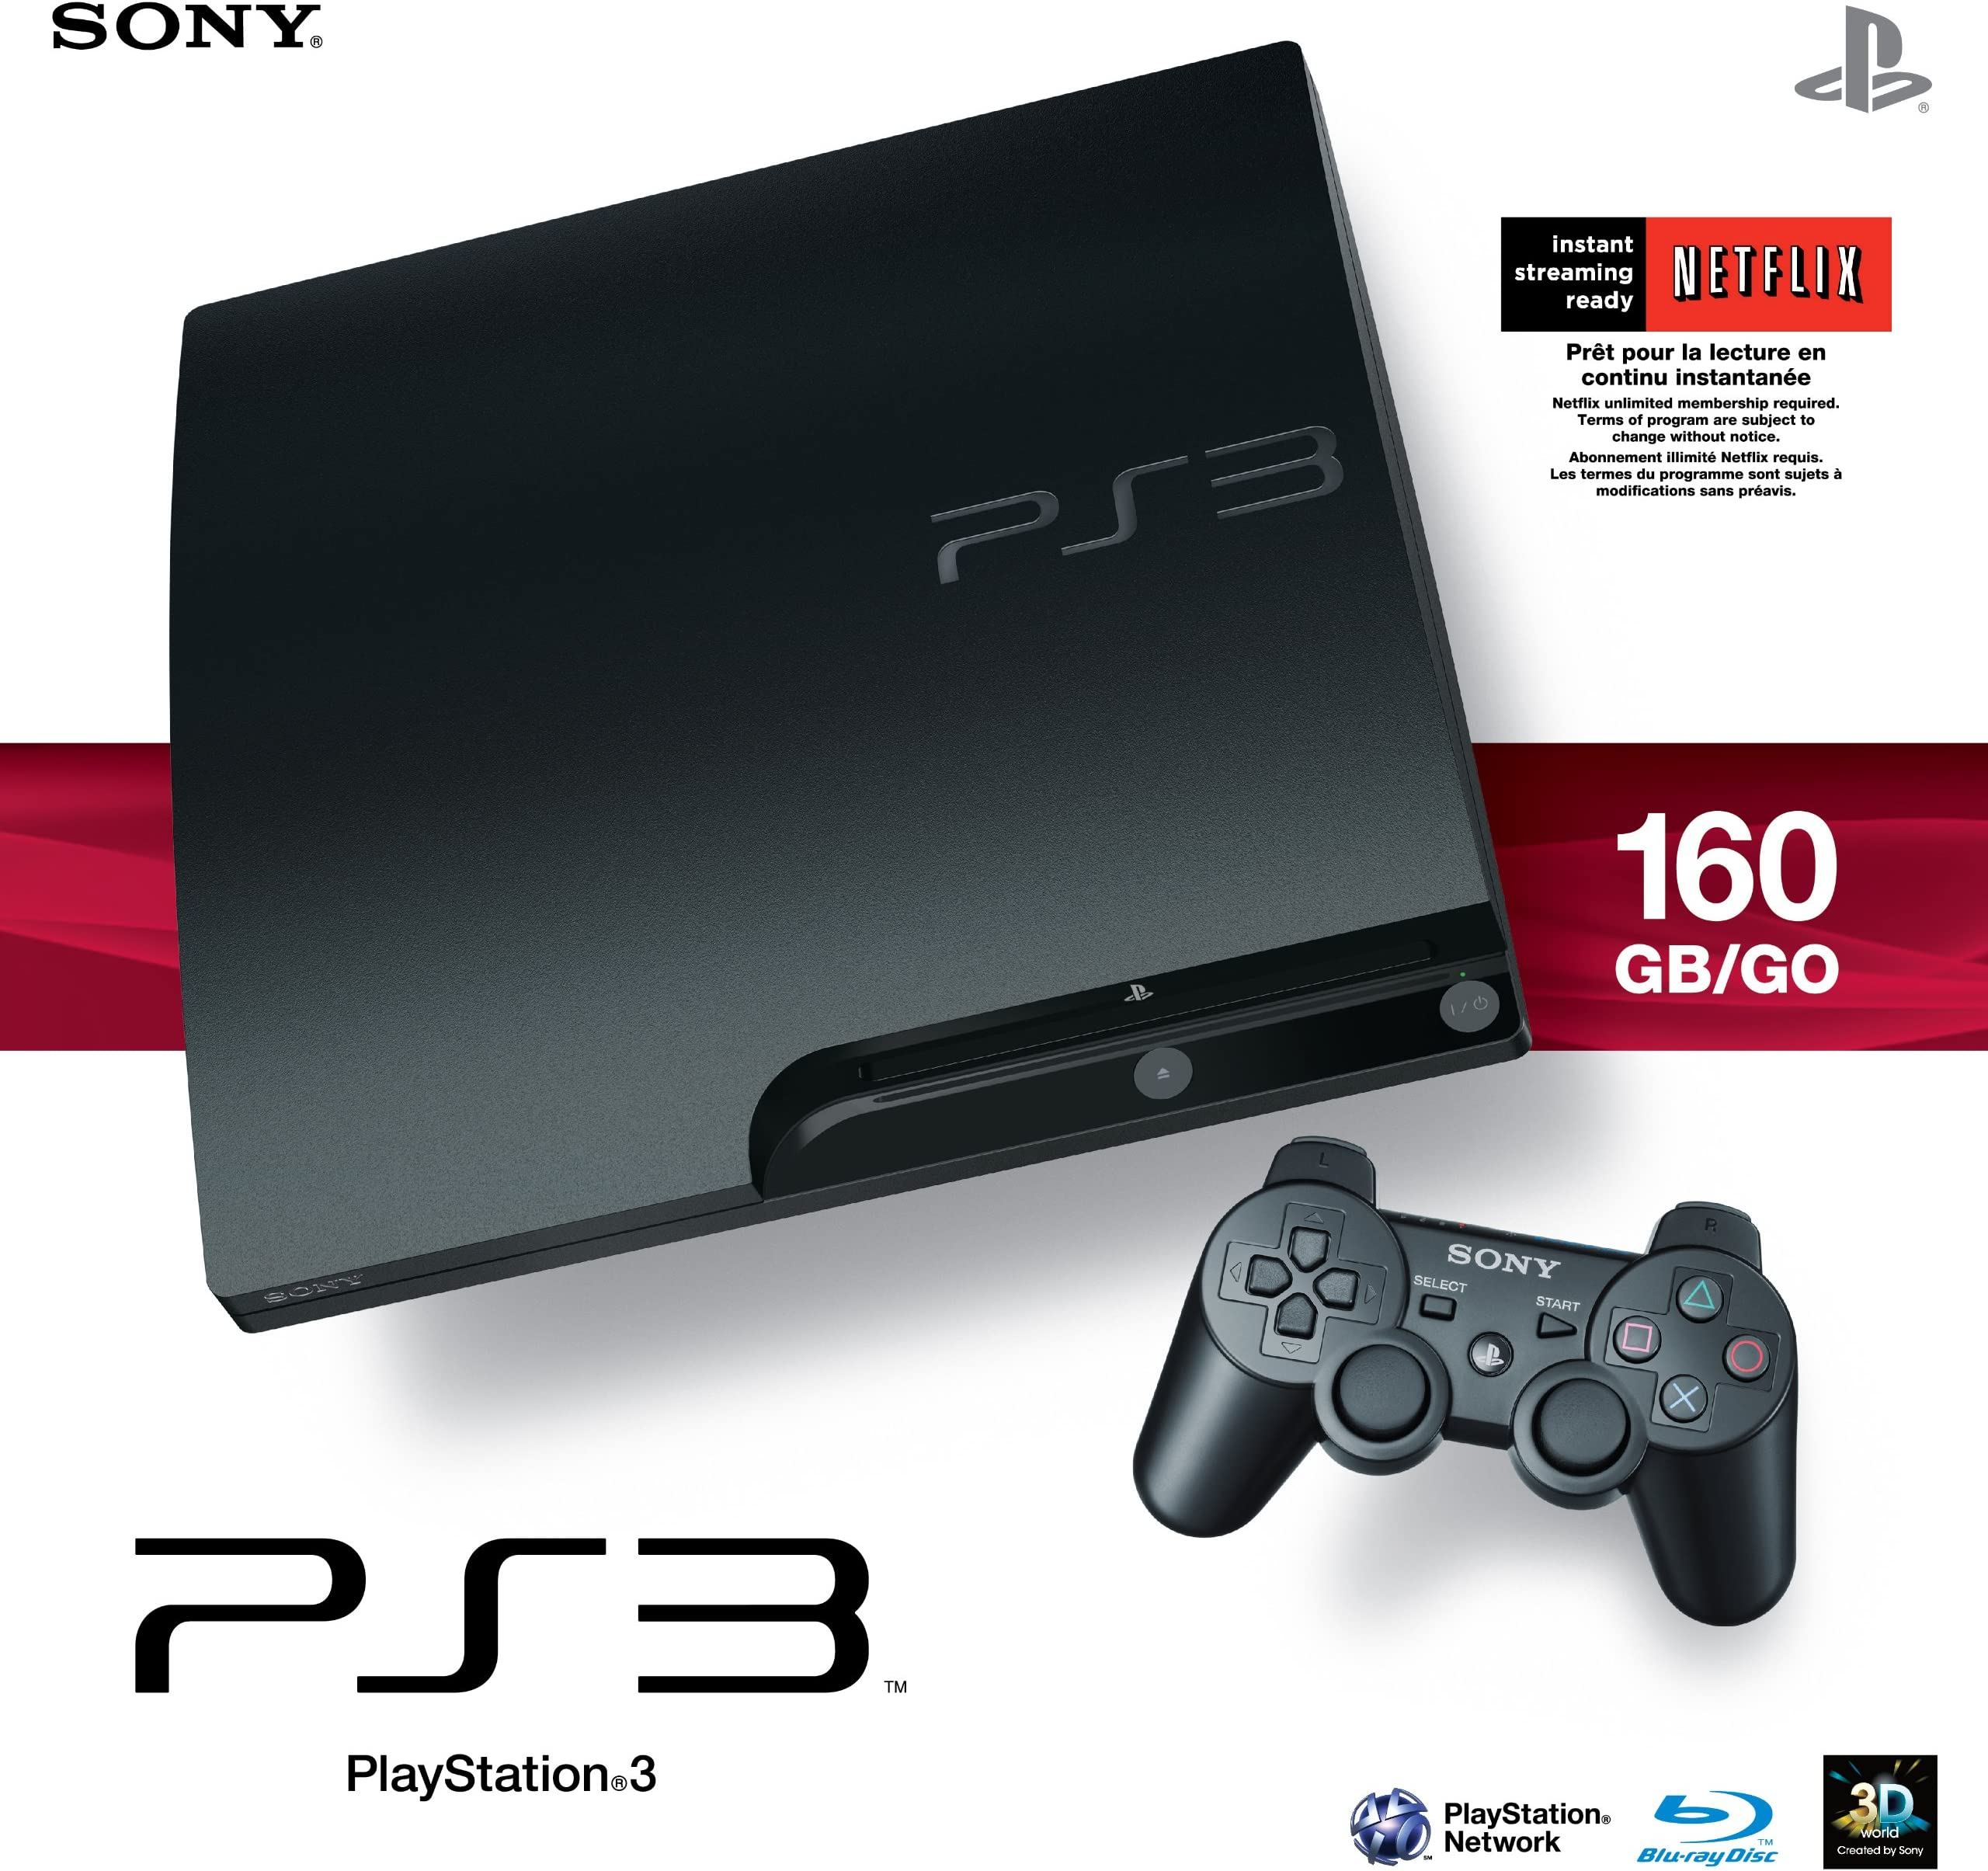 amazon com sony playstation 3 160gb system video games rh amazon com Sony Handheld Game Console Manufactured By Sony PlayStation 3 Video Games